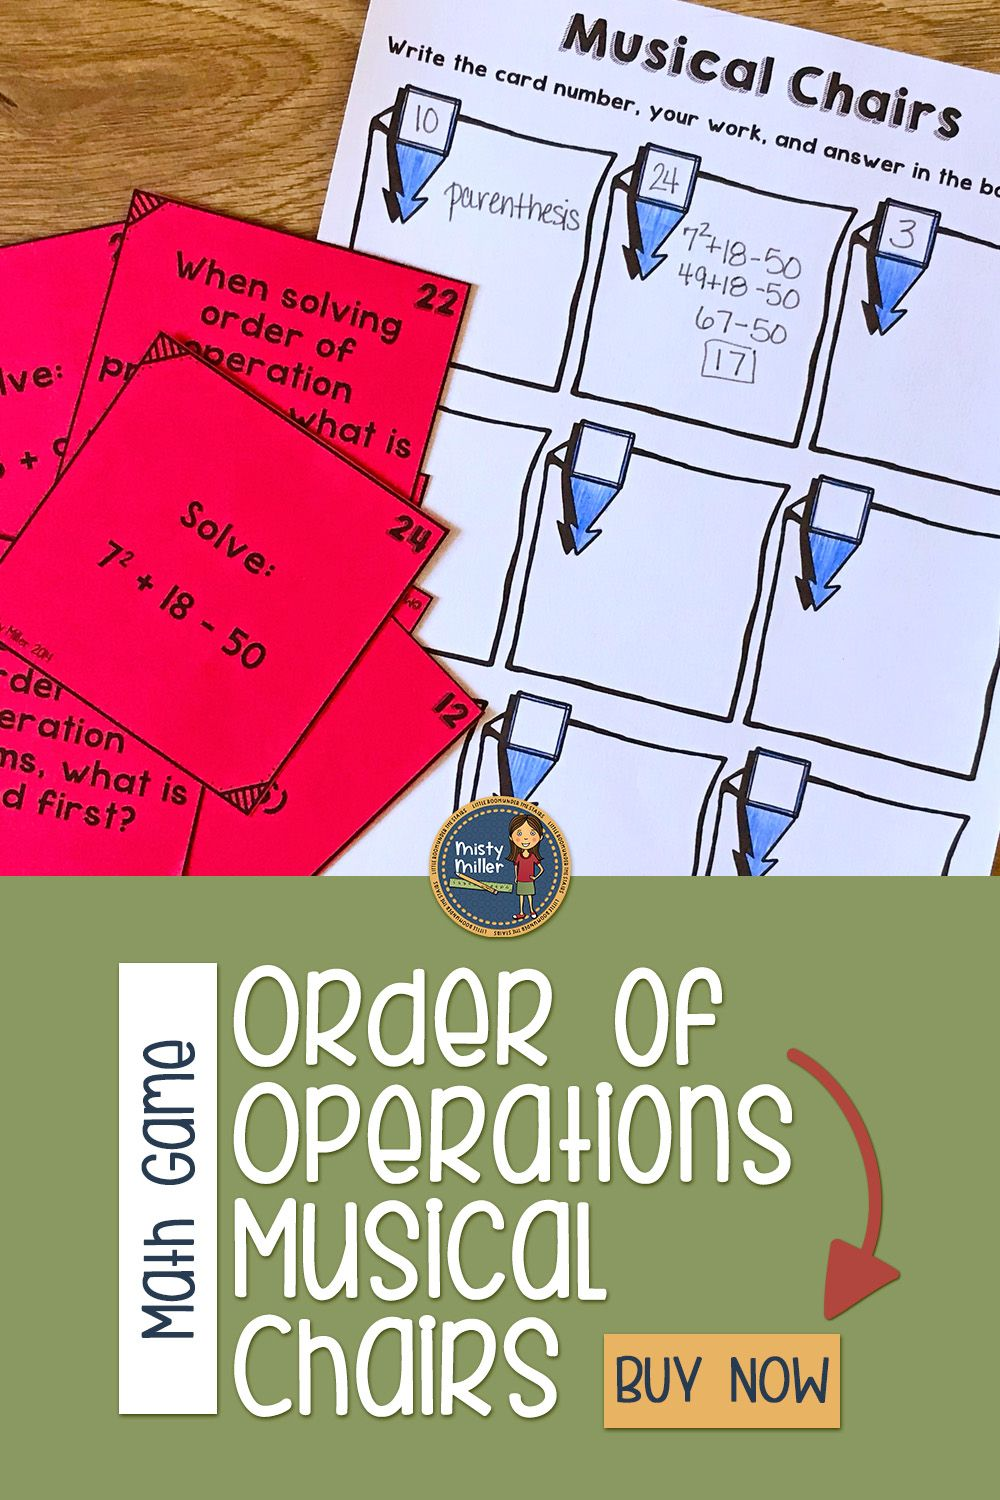 Order of Operations Musical Chairs Order of operations